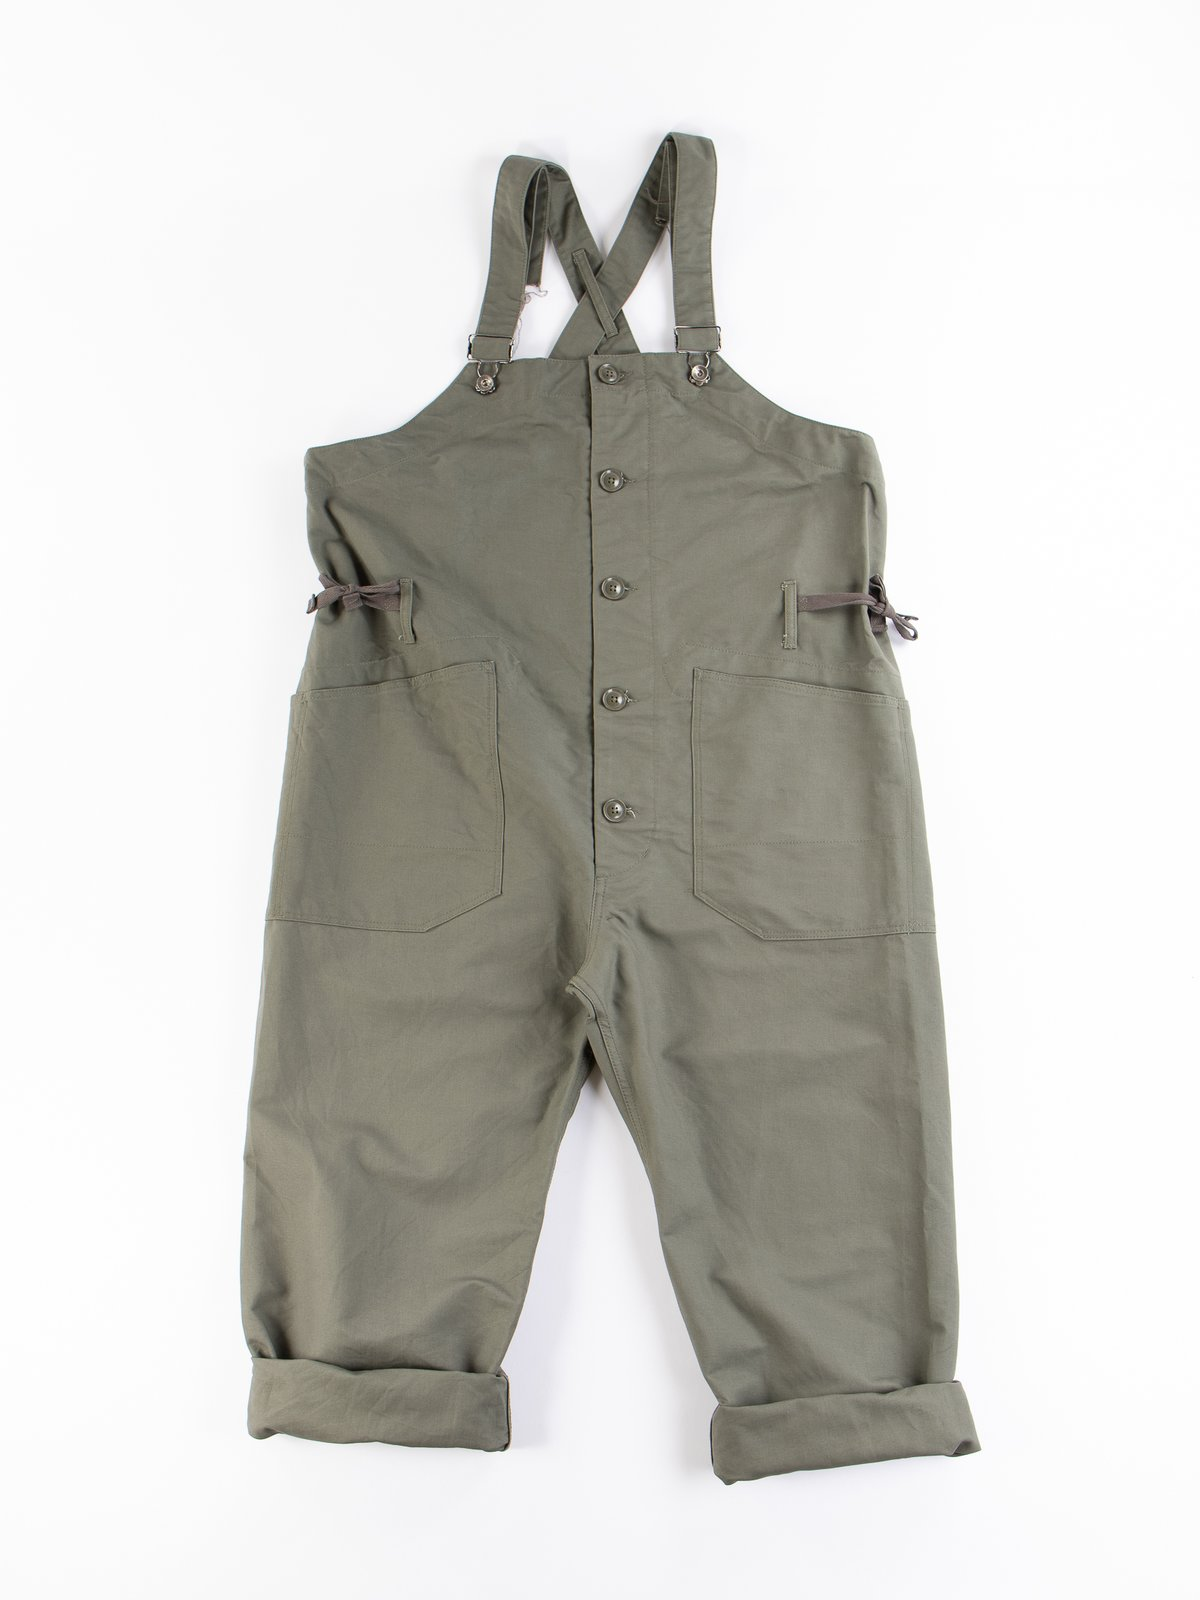 Olive Cotton Double Cloth Overalls - Image 1